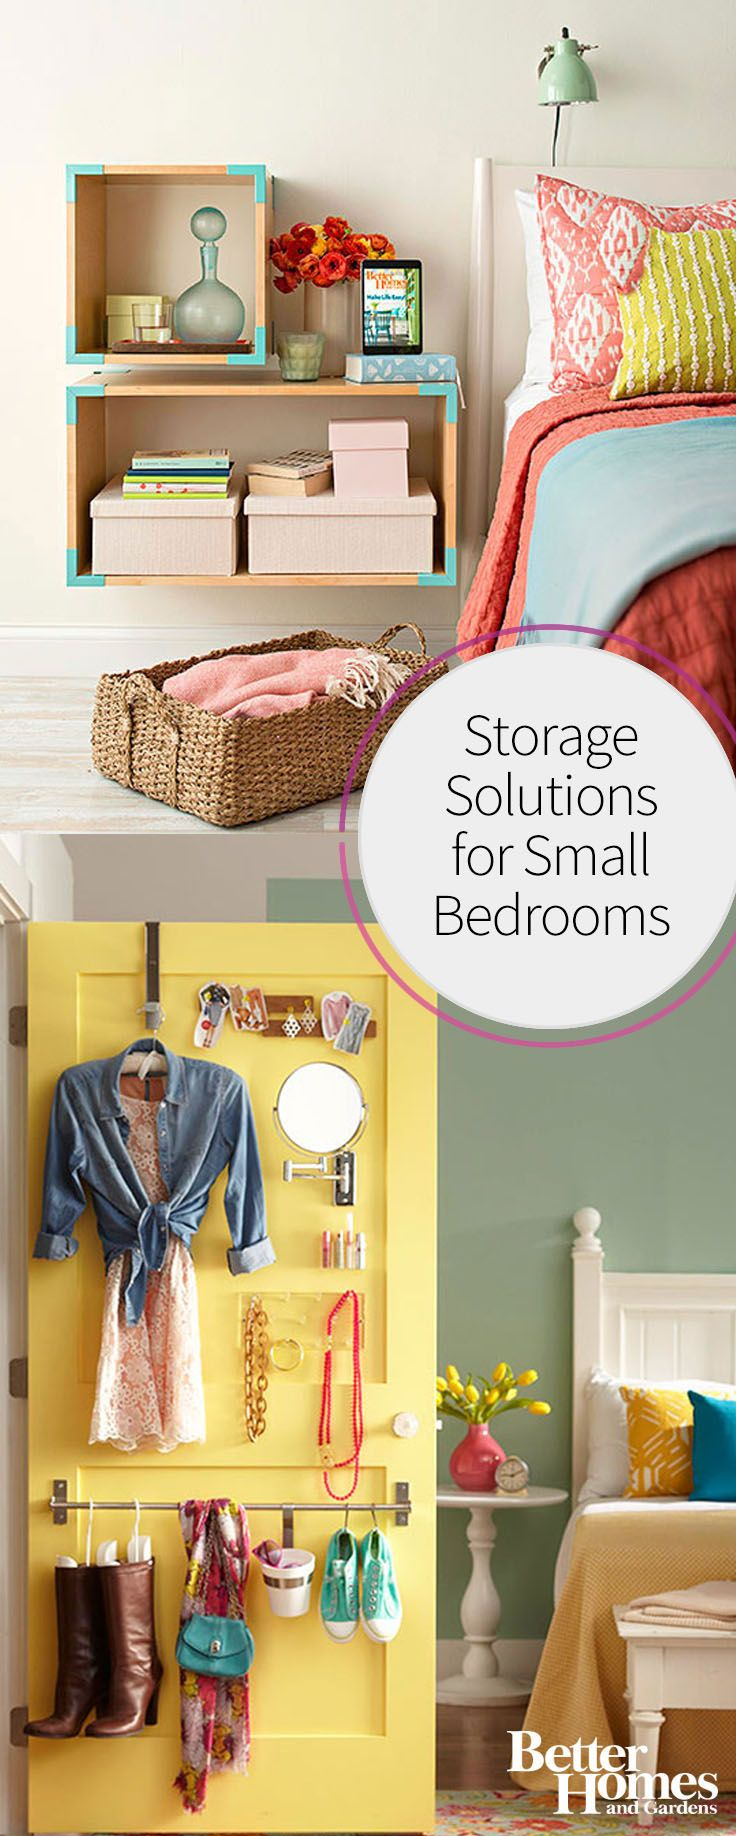 if you have a small bedroom use this guide to plan smart storage solutions that - Storage For Small Spaces Rooms